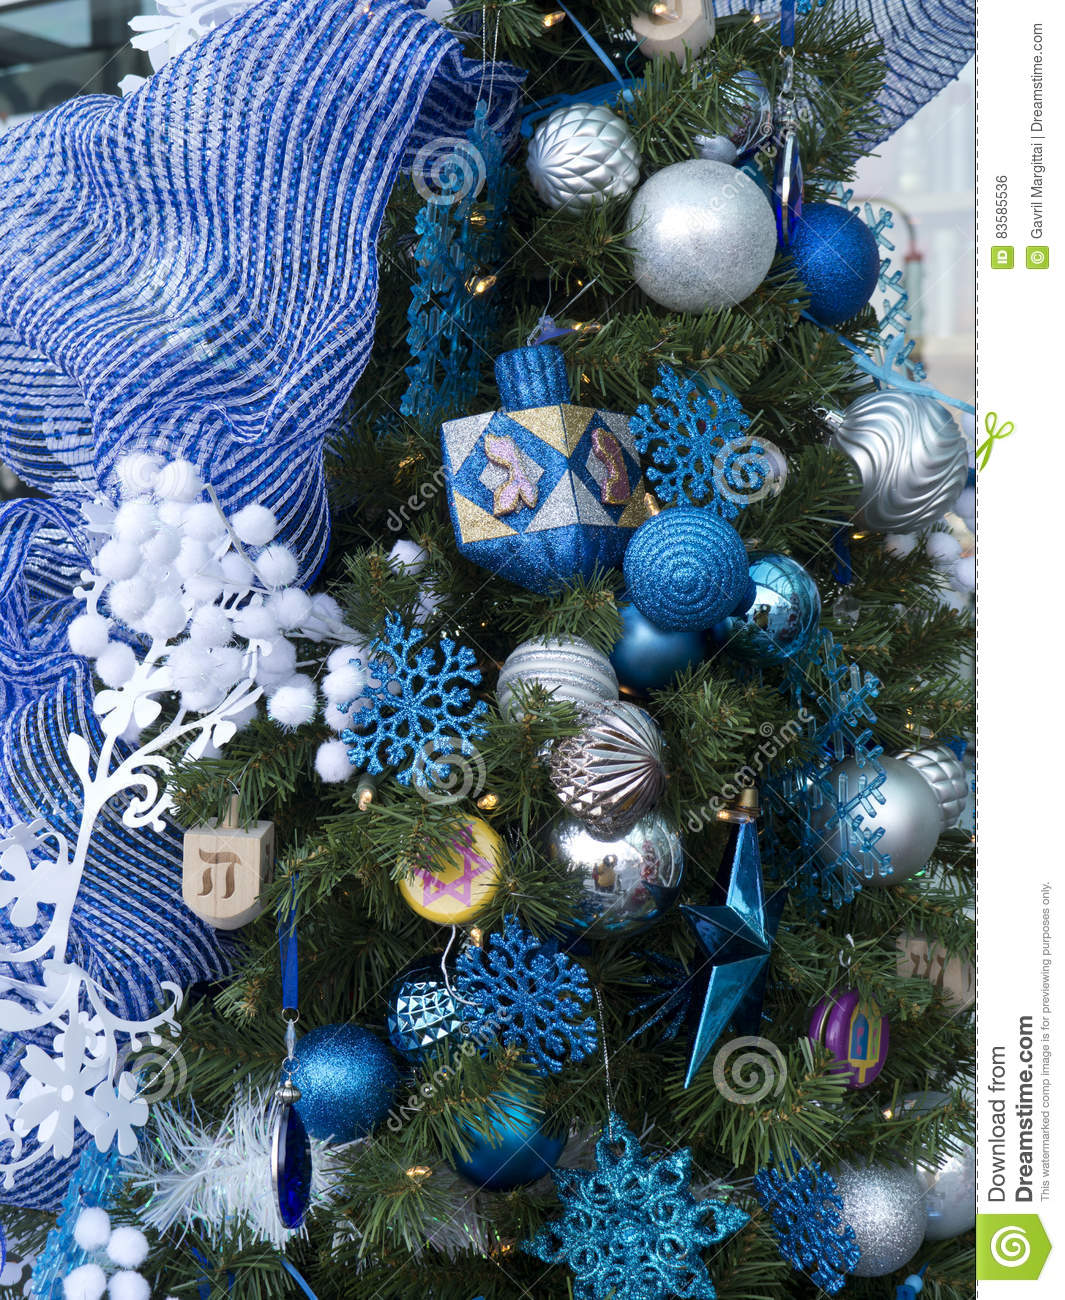 Christmas Tree With Hanukkah Decorations Stock Photo - Image of ...